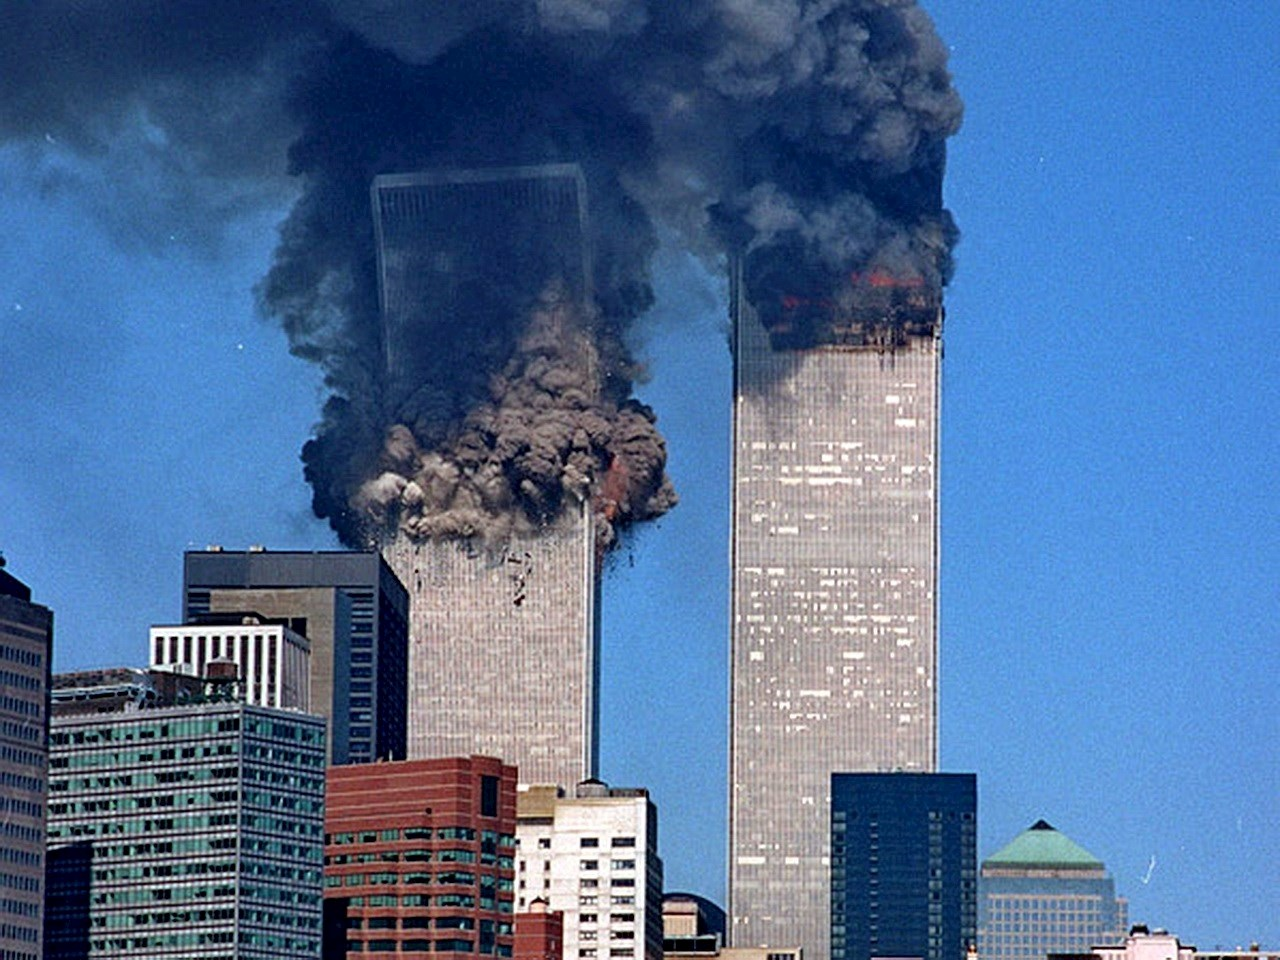 Pictures of the twin towers collapsing Cached